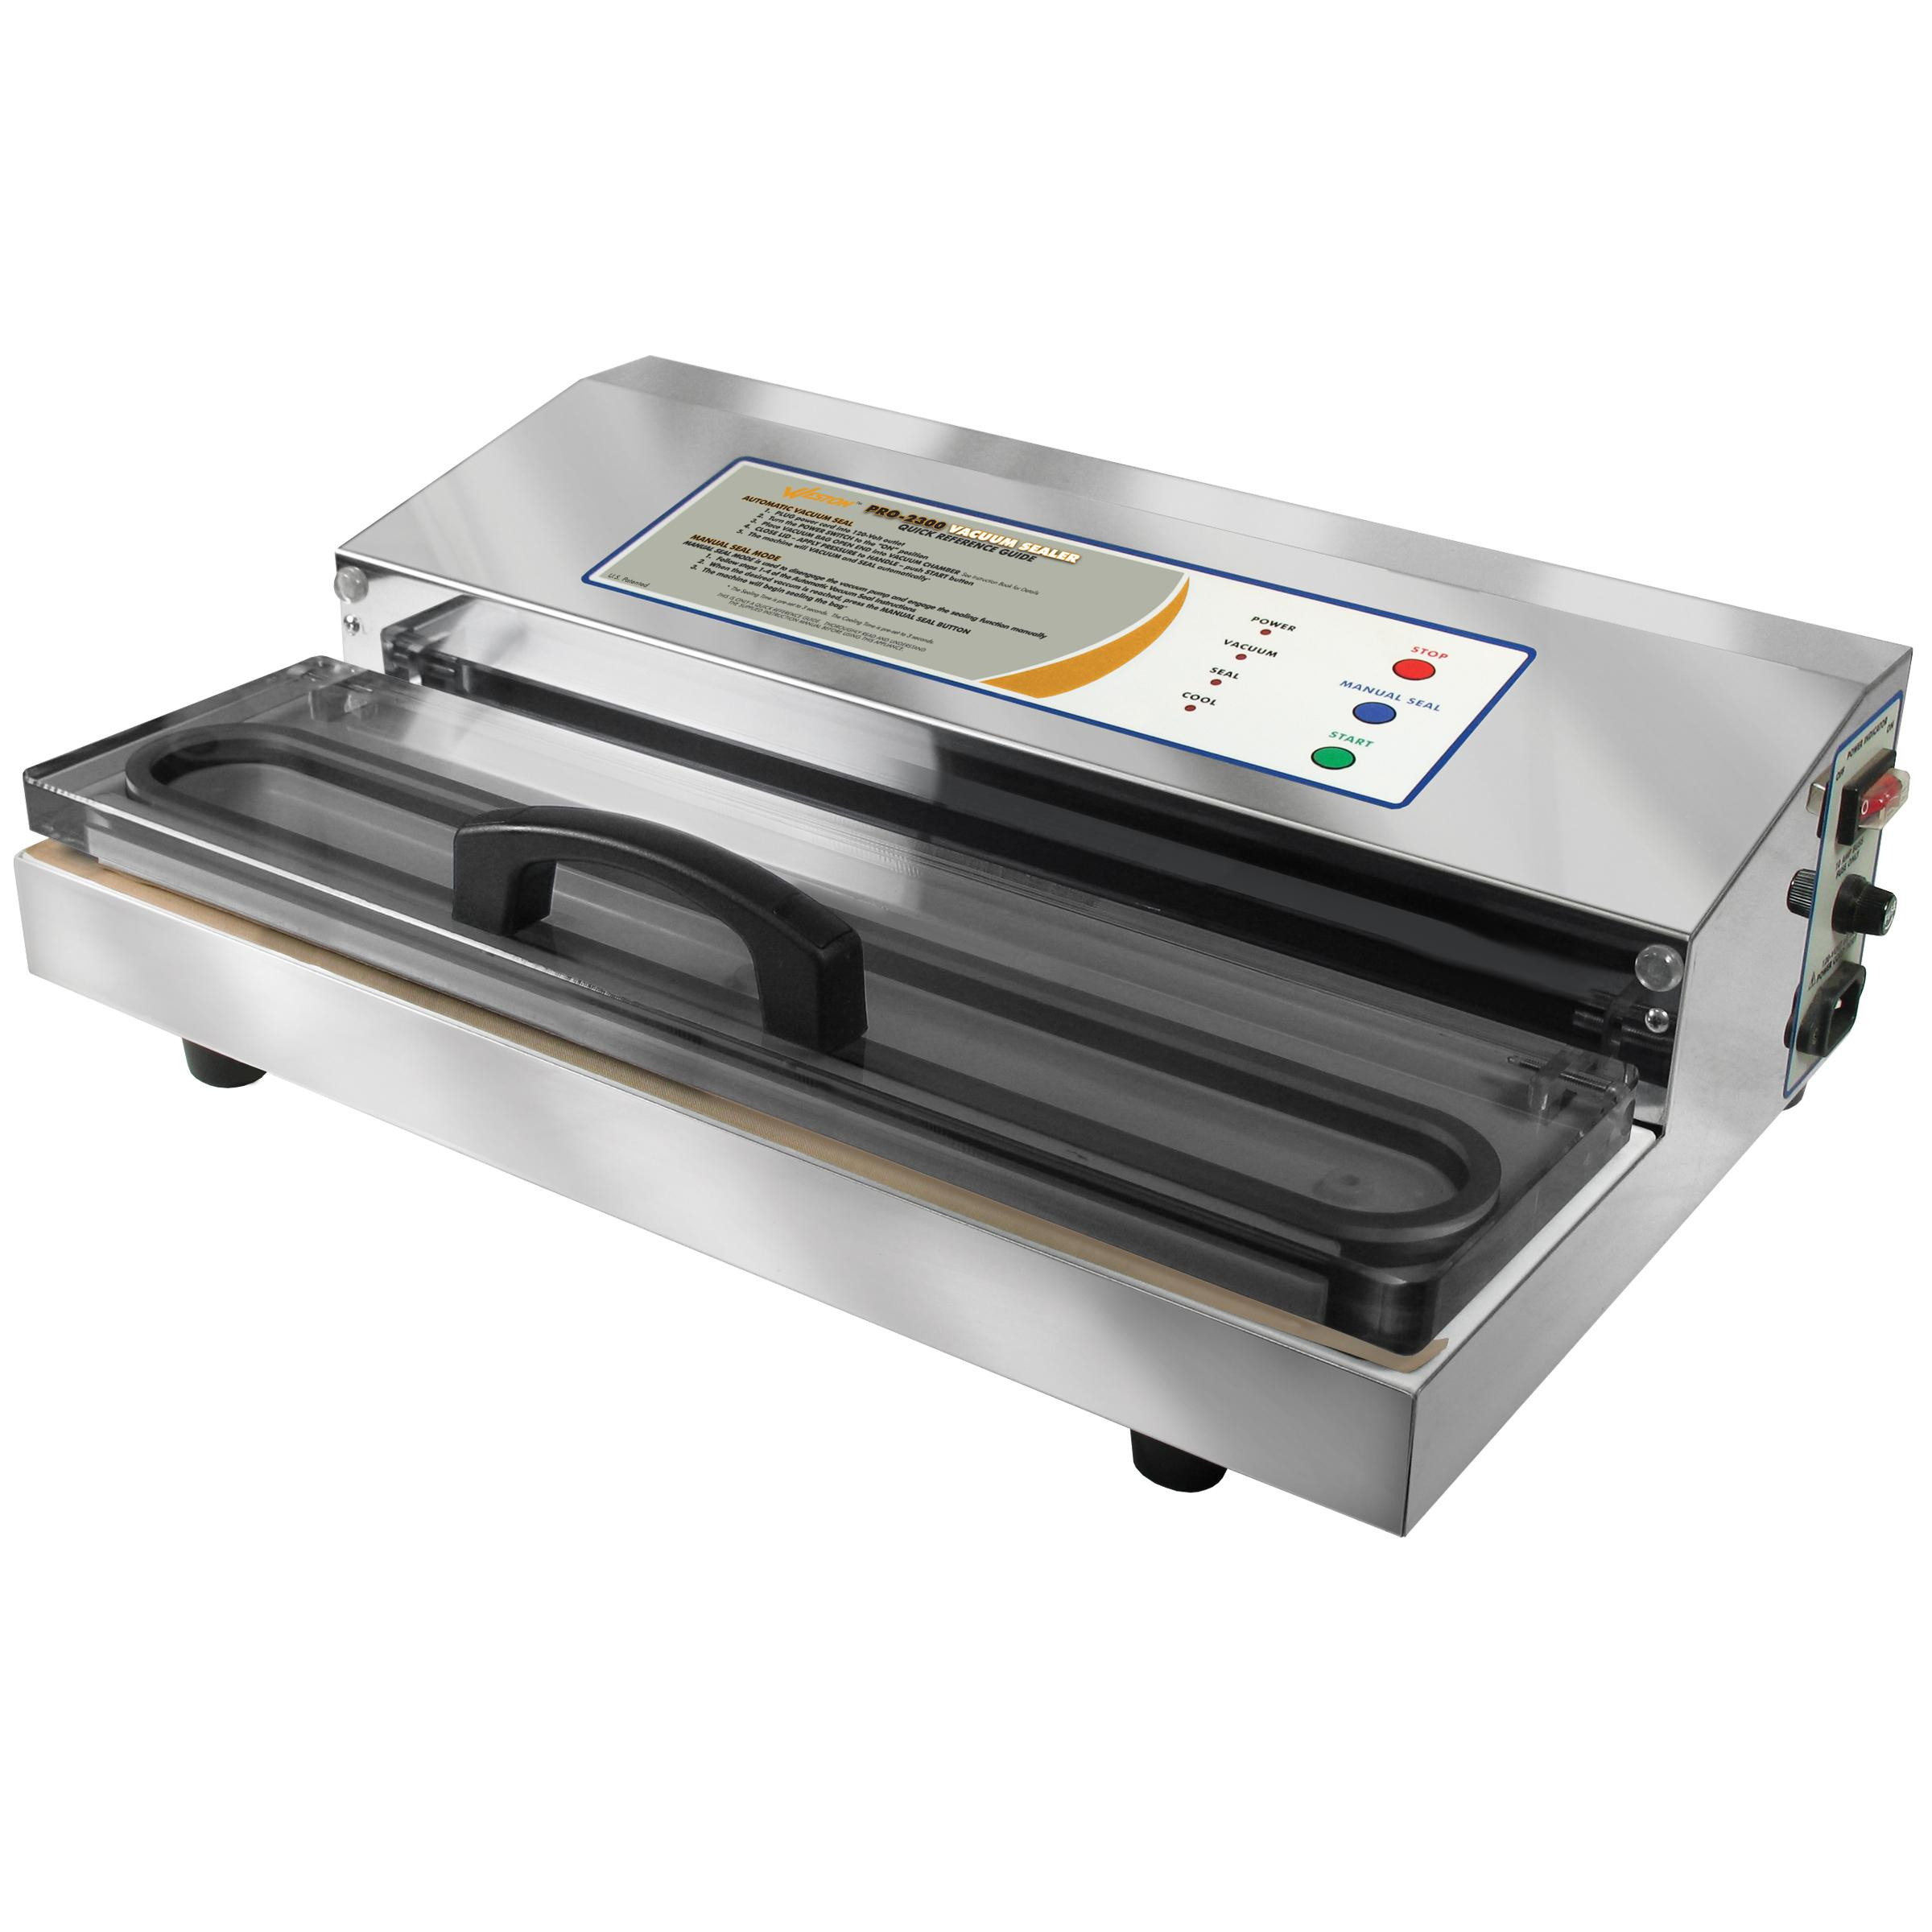 Weston 65 0201 Pro 2300 Vacuum Sealer Silver Amazon Ca